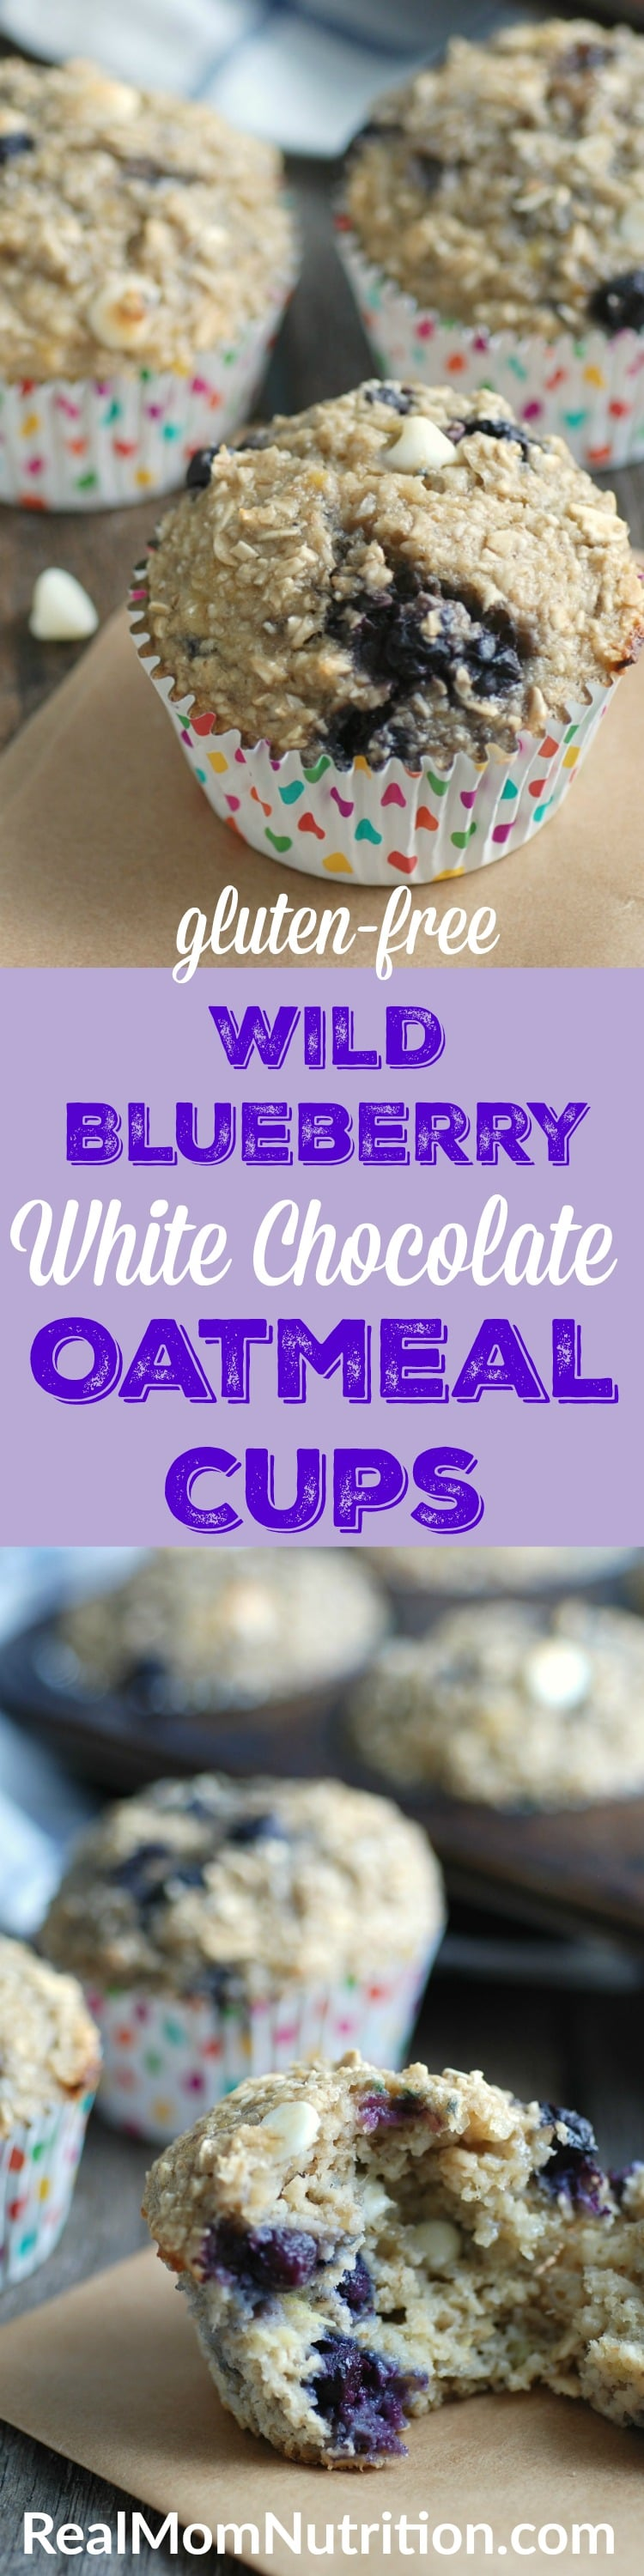 Gluten-Free Wild Blueberry and White Chocolate Oatmeal Cups